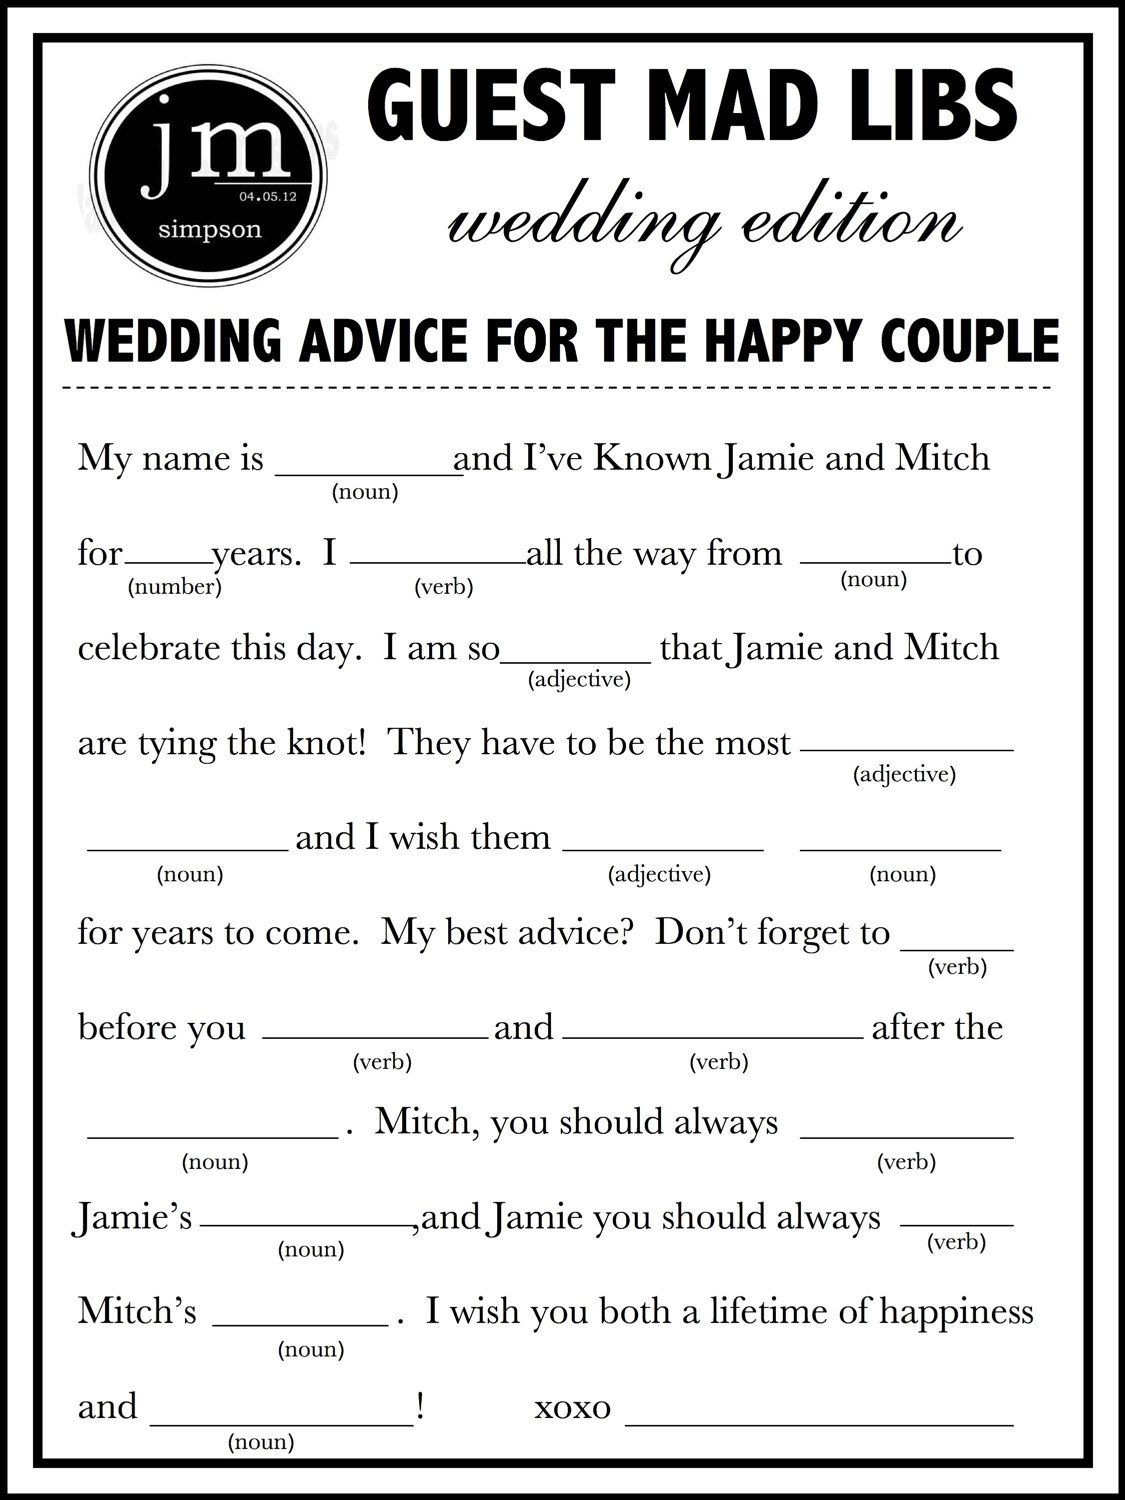 Printable Wedding Mad Lib A Fun Guest Book By Weddingsbyjamie